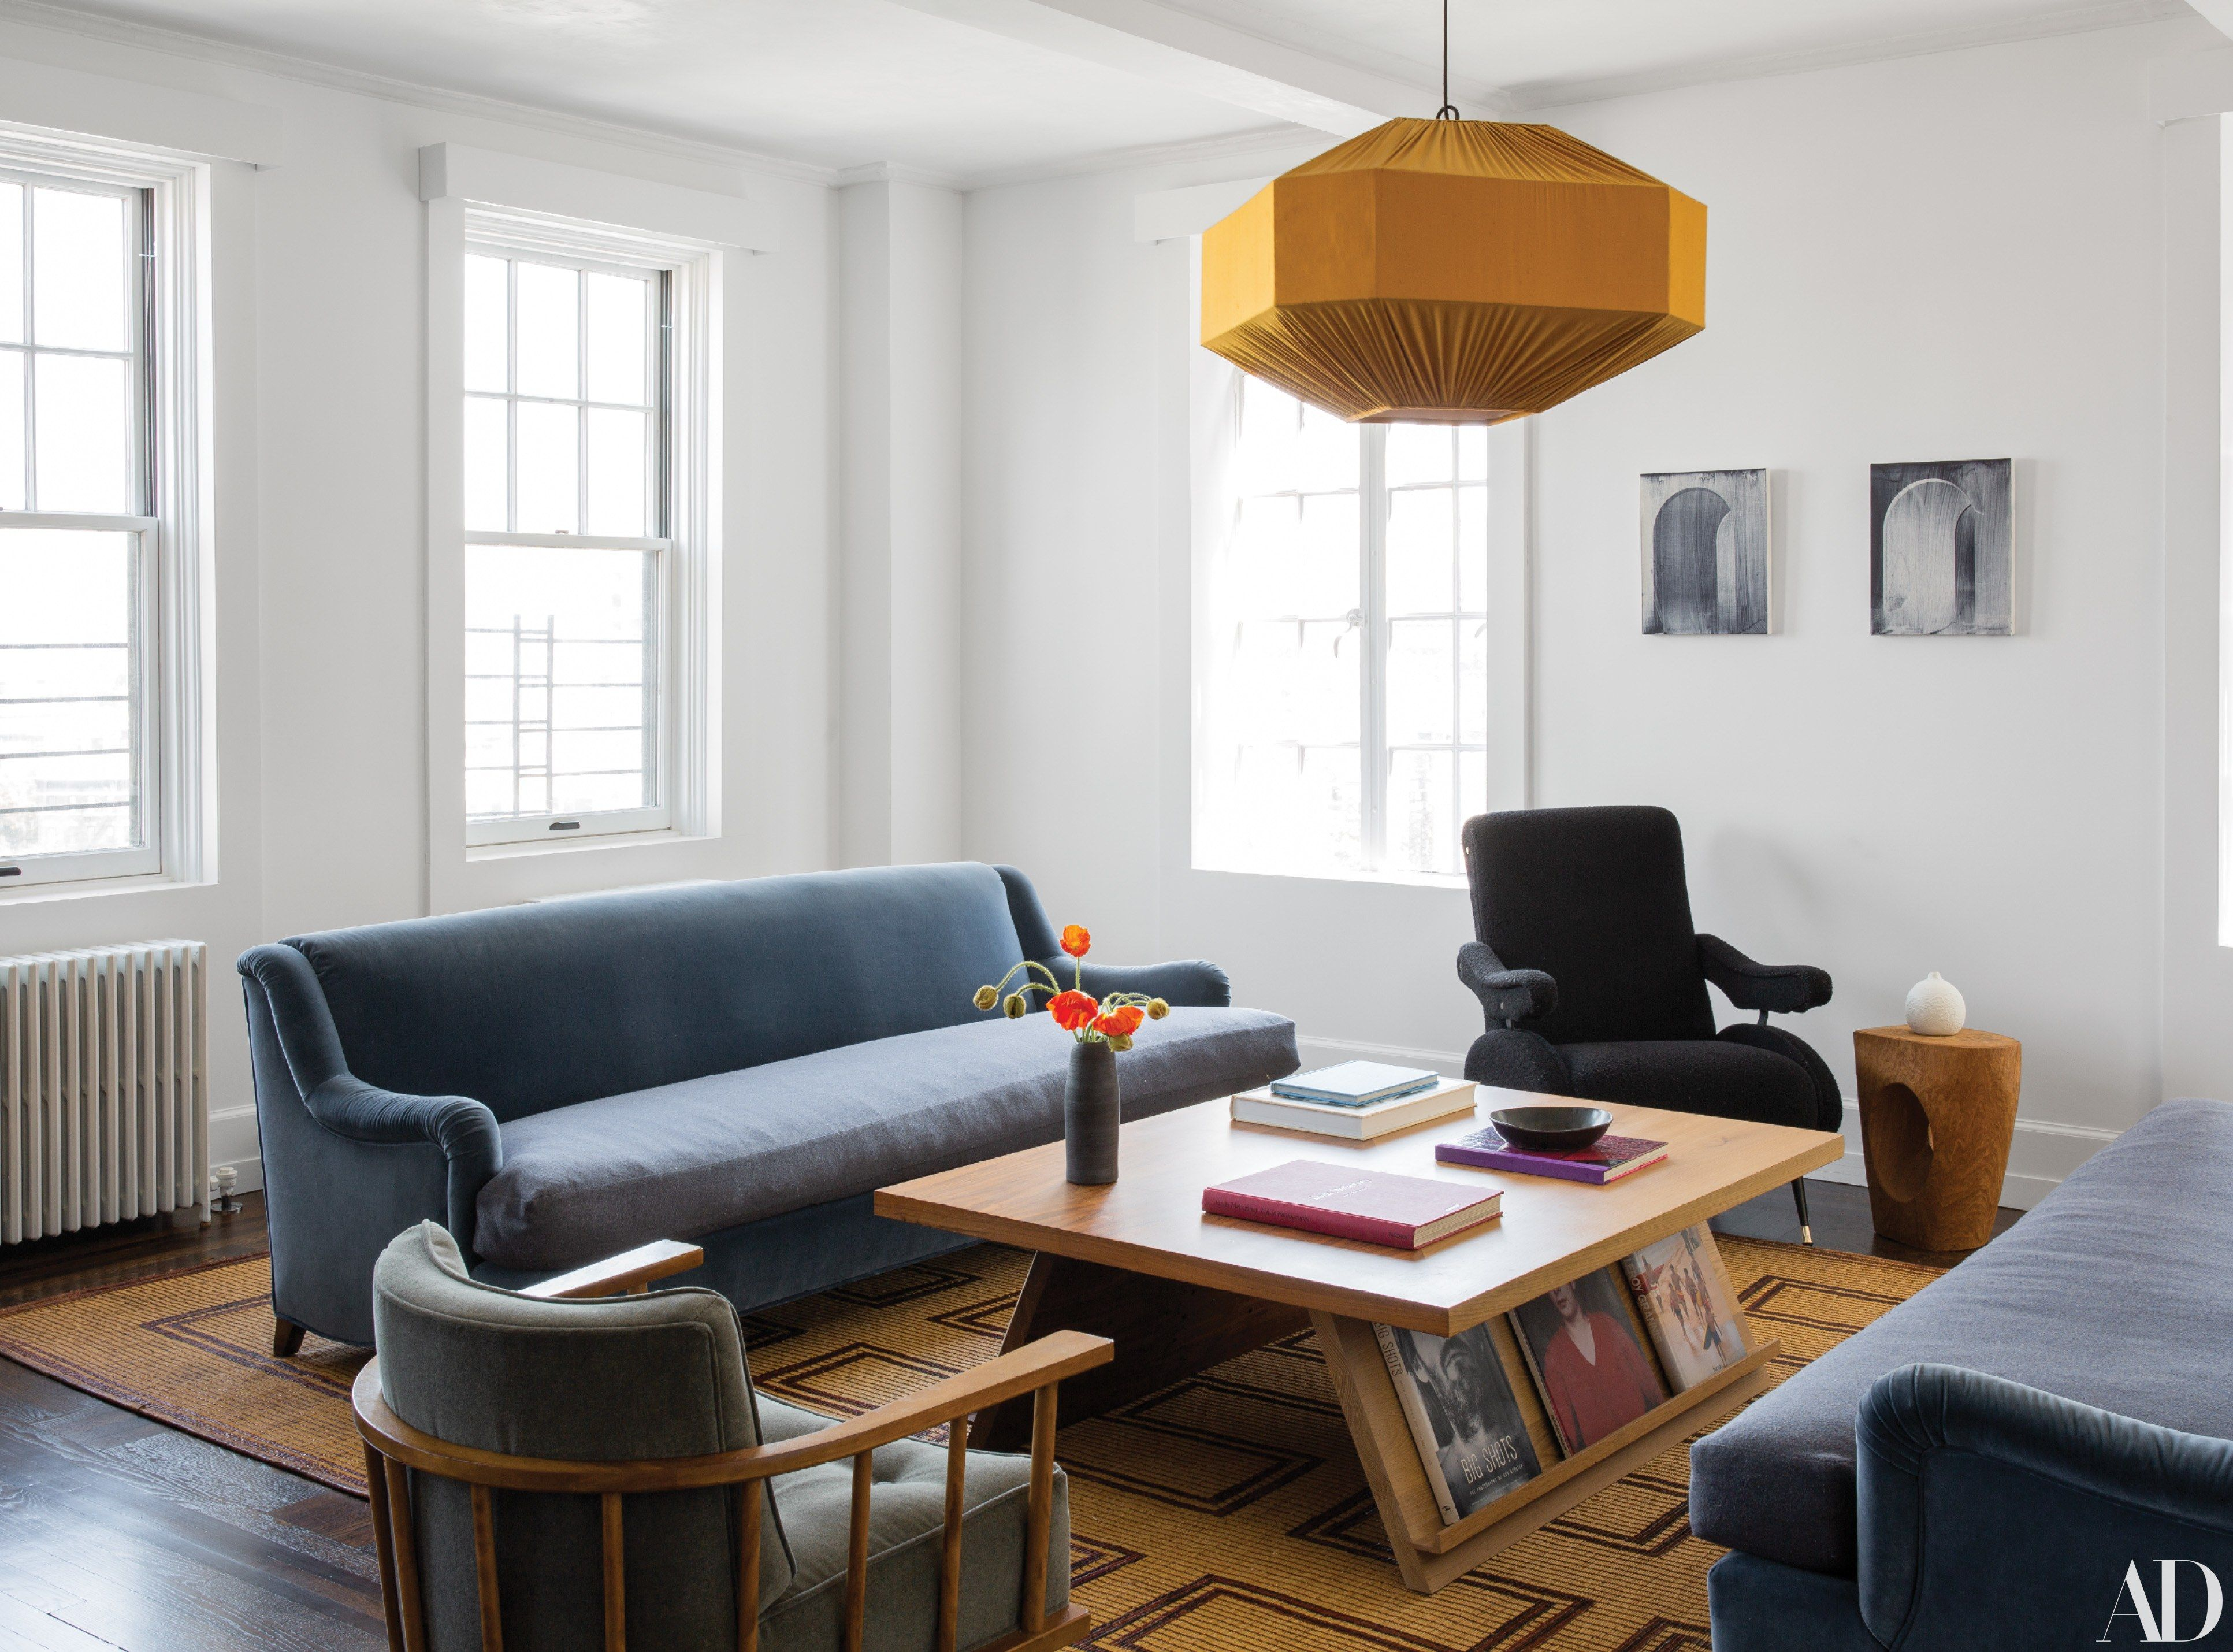 ashe and leandro in architectural digest - Google Search ...